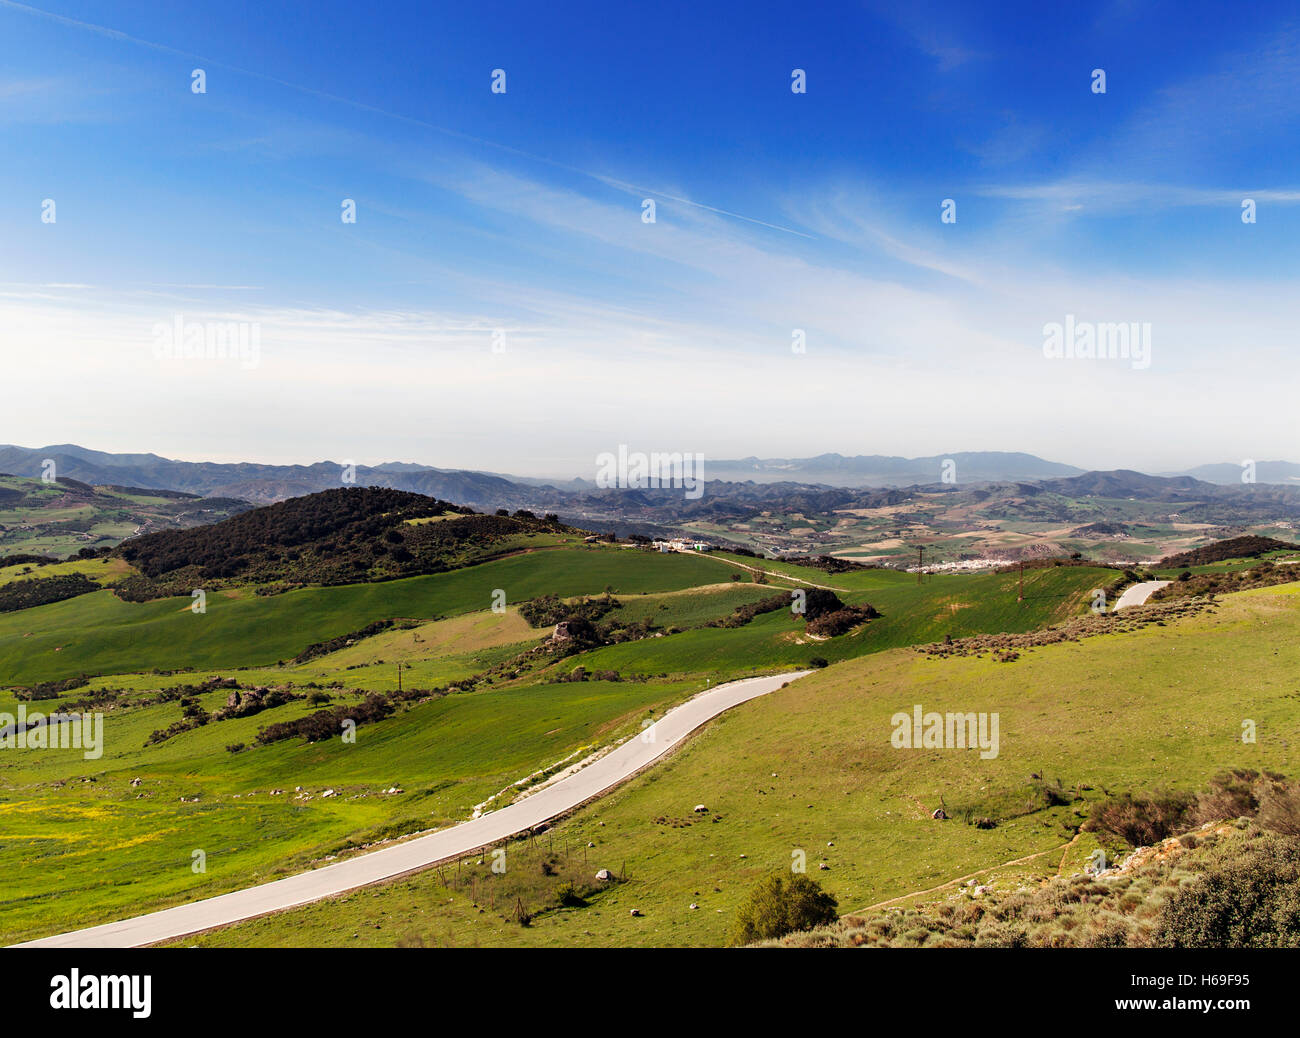 Road below the Torcal de Antequera National Park, Malaga Province, Andalucia, Spain - Stock Image